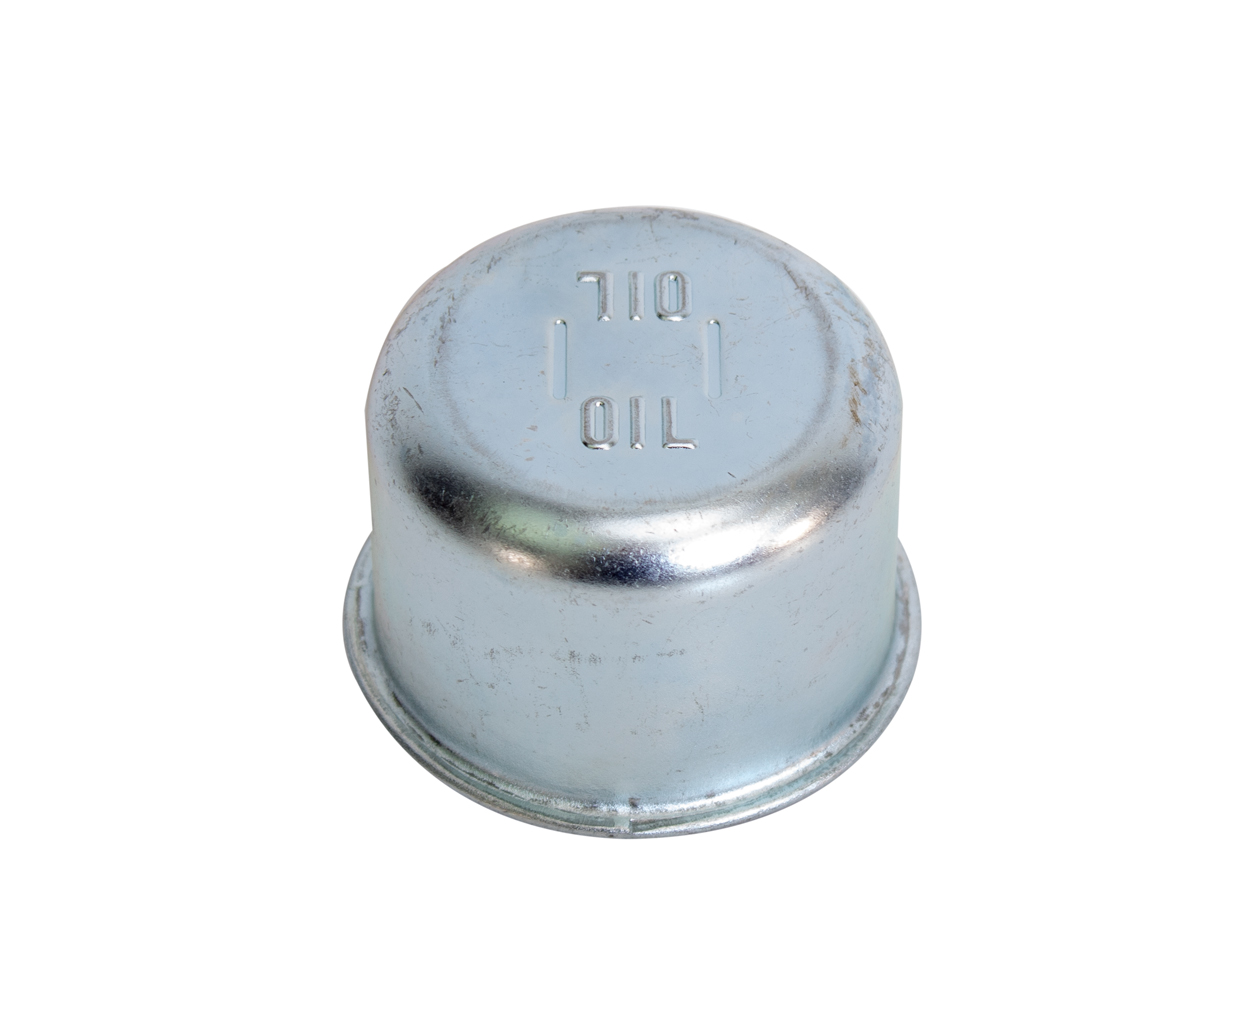 64-67 Mopar Small Oil Filler Breather Cap (Unpainted)